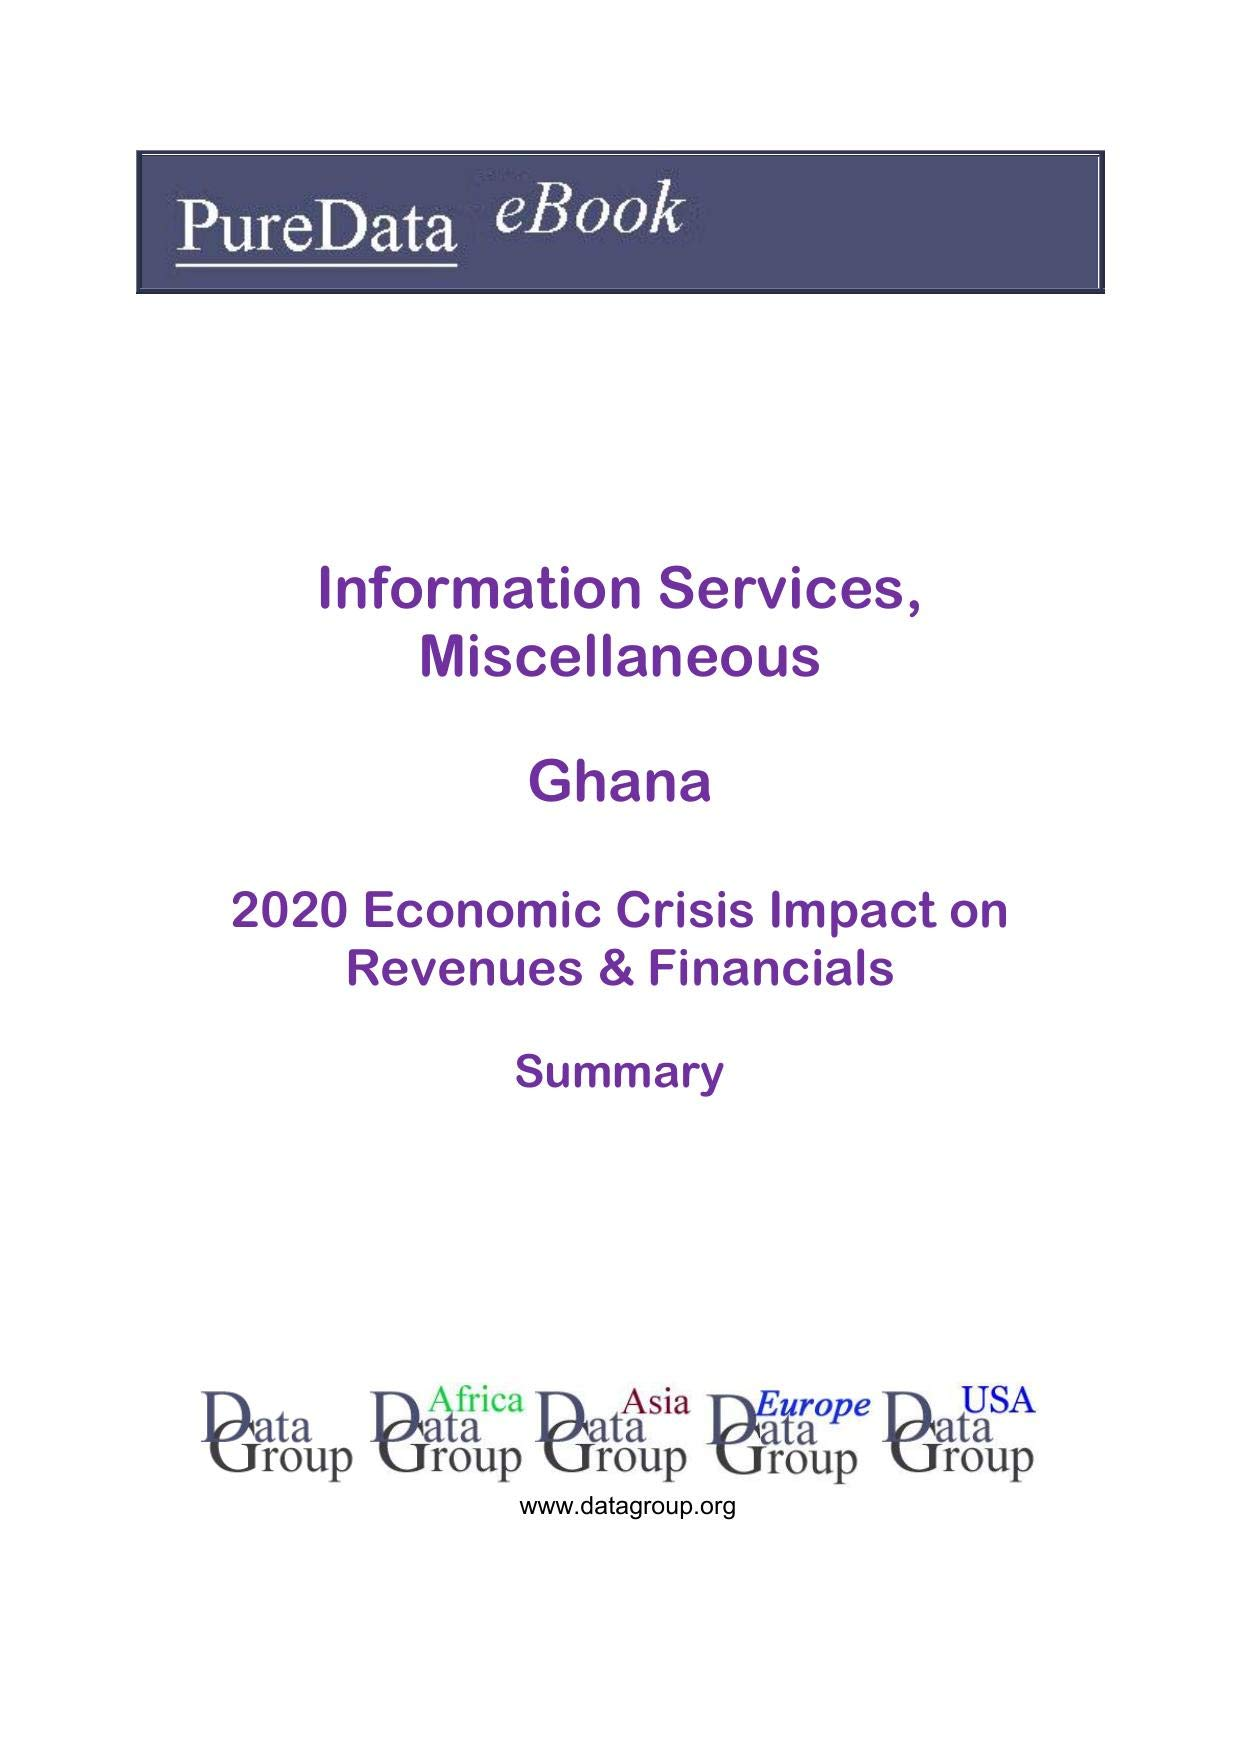 Information Services, Miscellaneous Ghana Summary: 2020 Economic Crisis Impact on Revenues & Financials